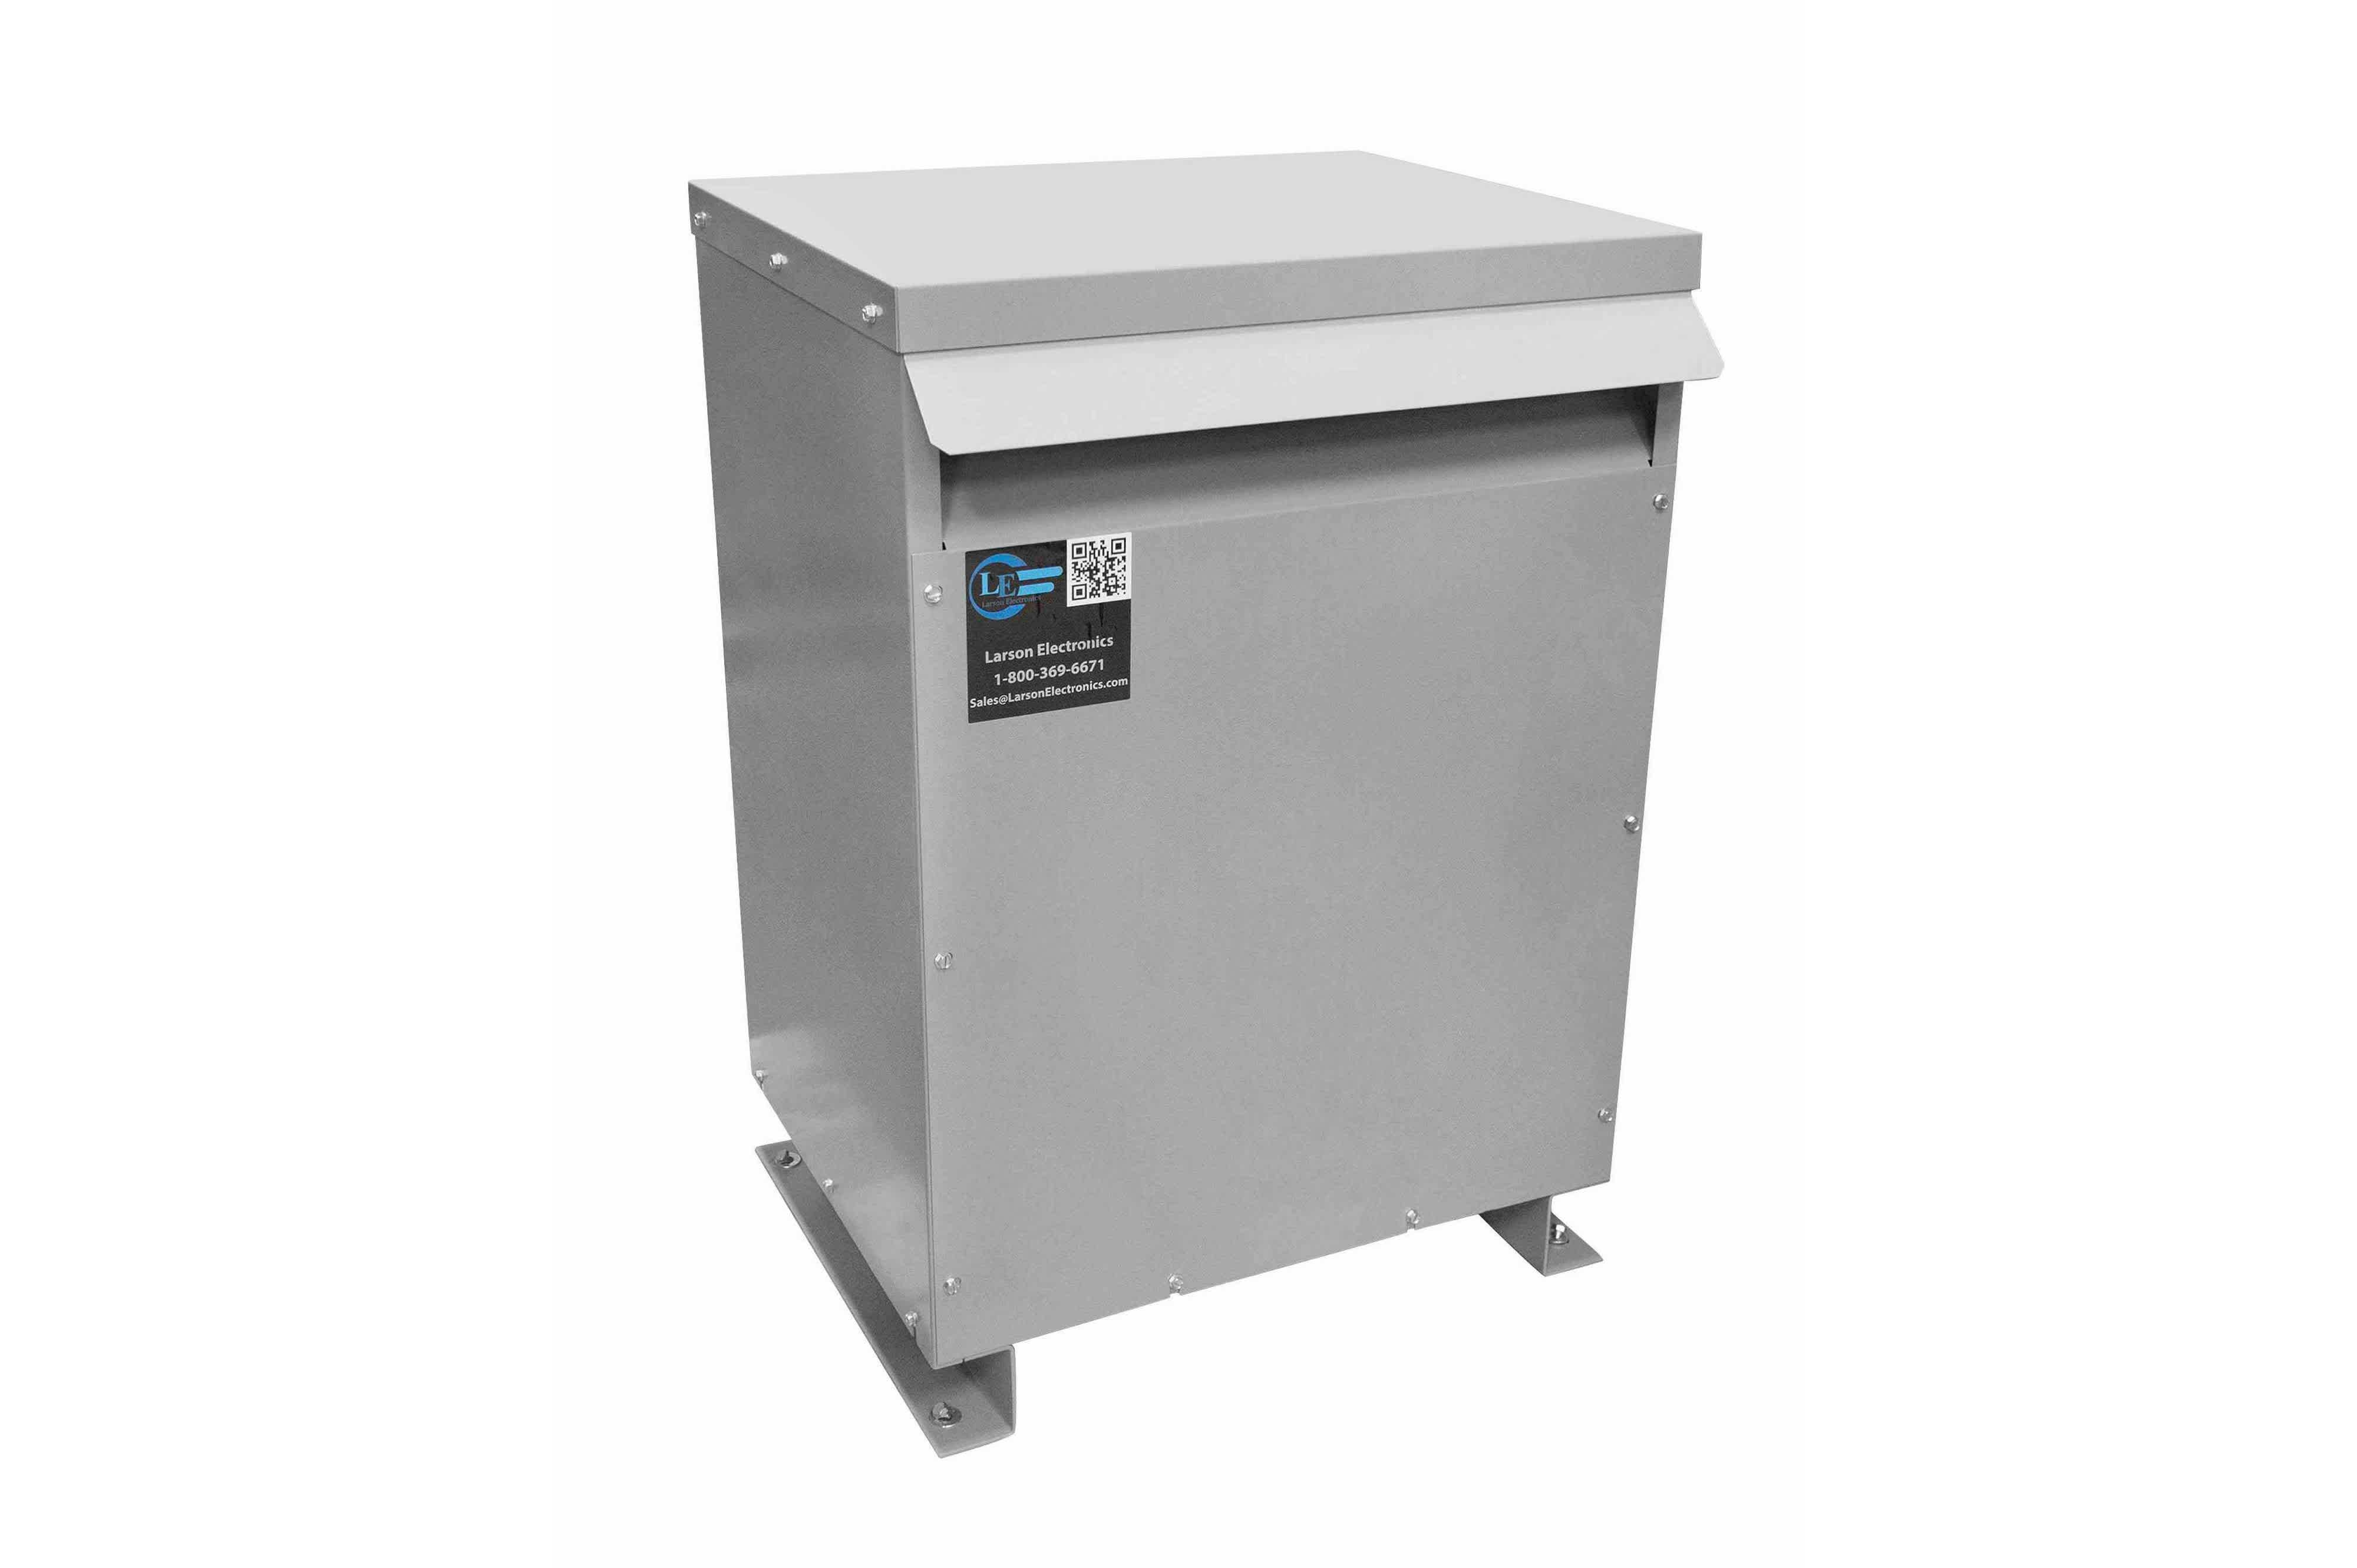 40 kVA 3PH Isolation Transformer, 400V Wye Primary, 208V Delta Secondary, N3R, Ventilated, 60 Hz